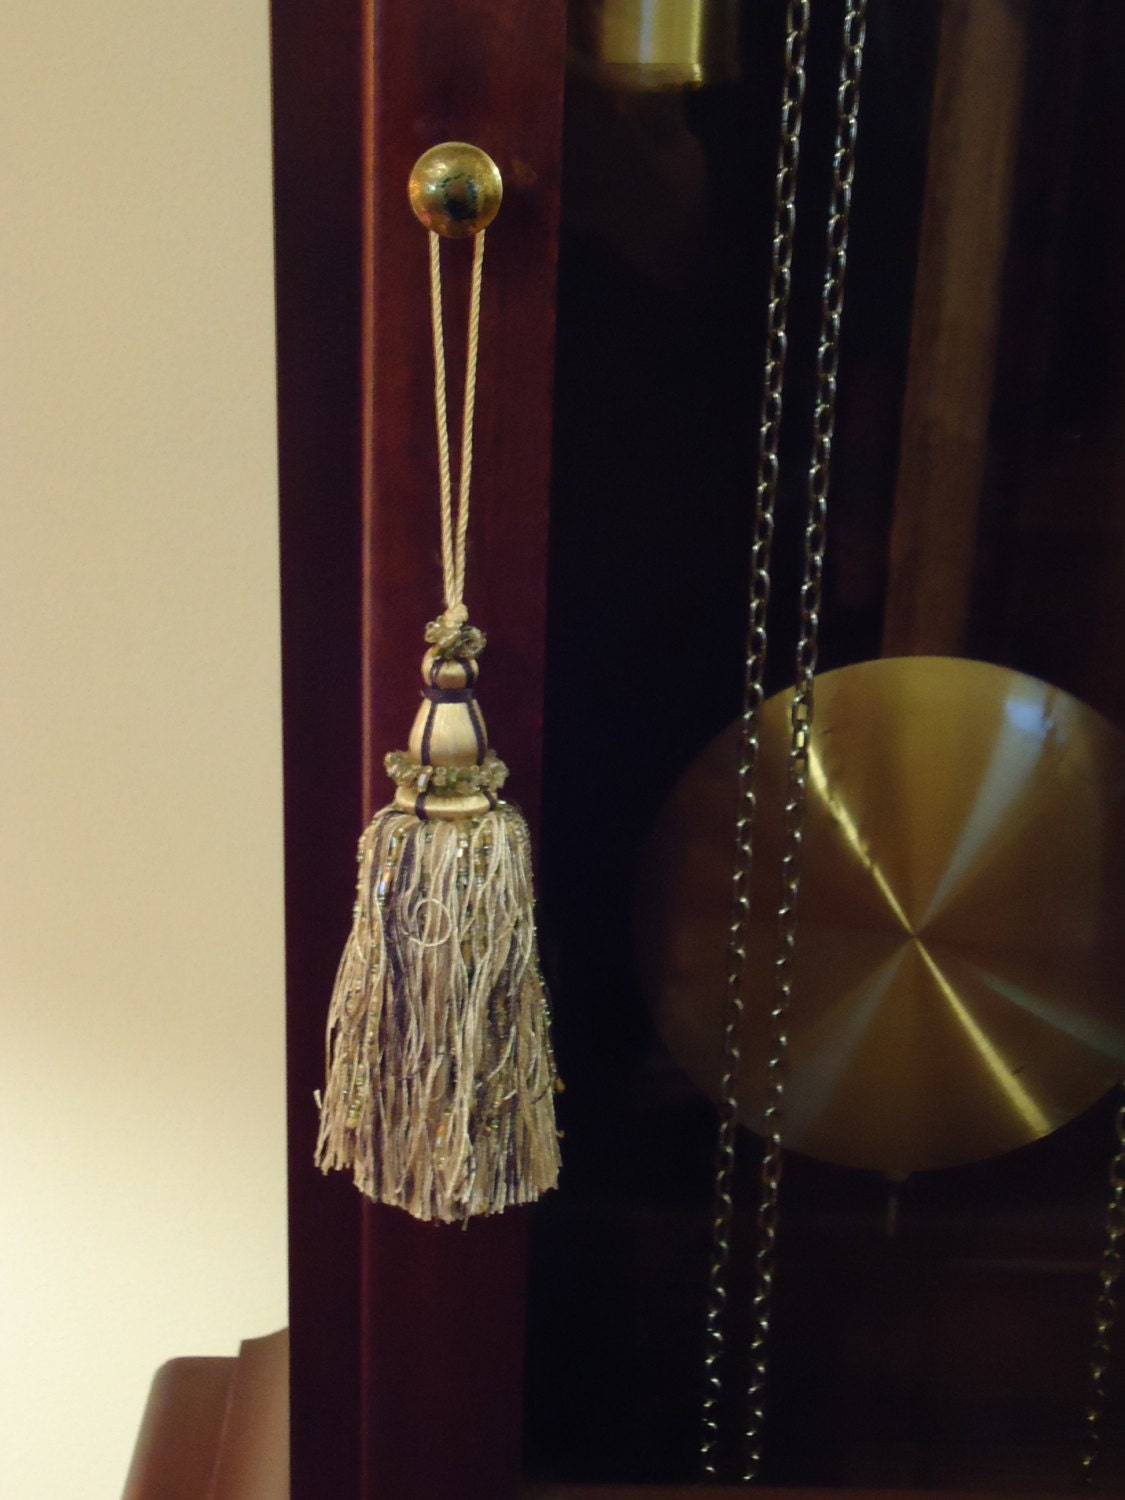 vintage armoire or key tassels in cream and antique gold. Black Bedroom Furniture Sets. Home Design Ideas